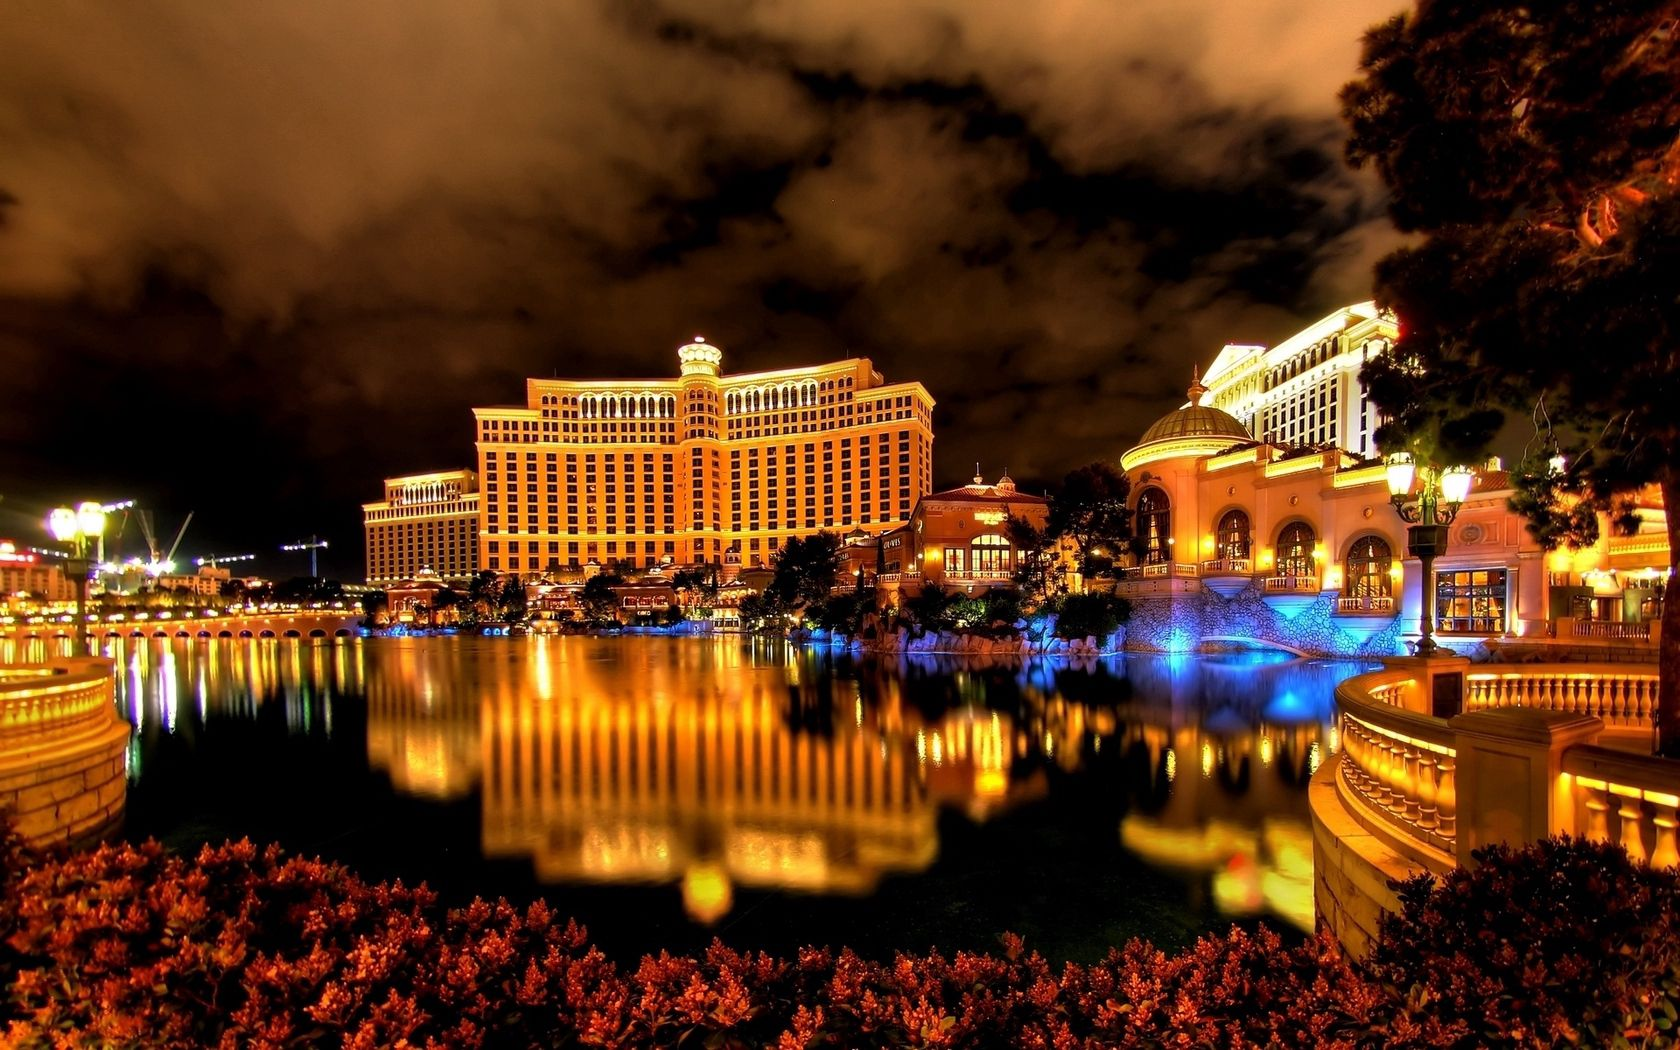 124998 Screensavers and Wallpapers Fountain for phone. Download Cities, Night, Fountain, Las Vegas, Building, Reflection, Hotel pictures for free